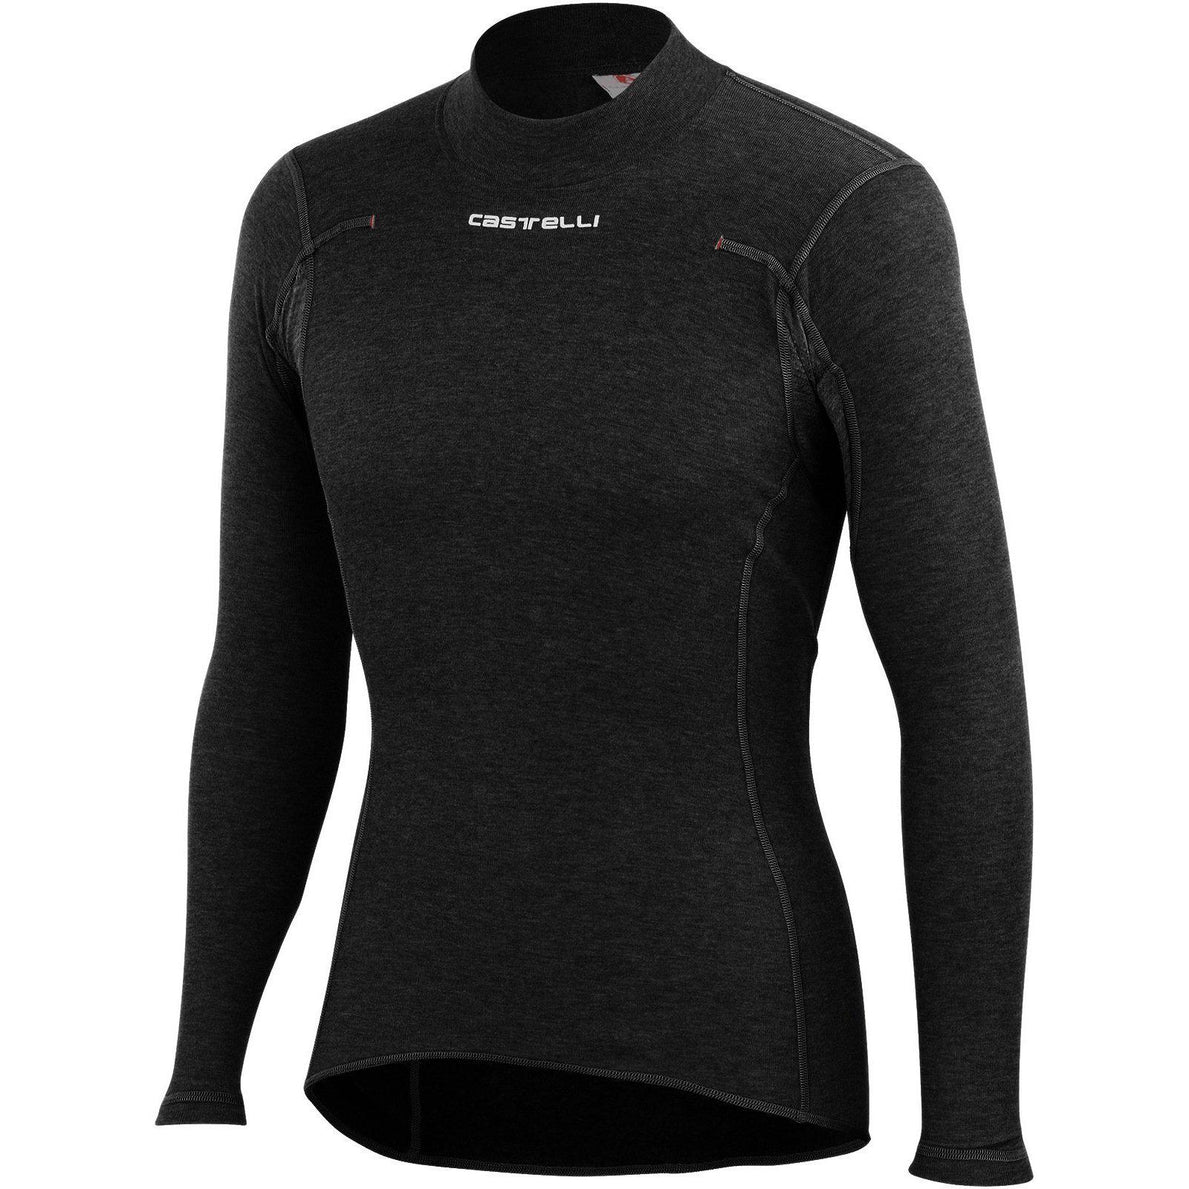 Castelli-Castelli Flanders Warm Base Layer-Black-XS-CS145310101-saddleback-elite-performance-cycling